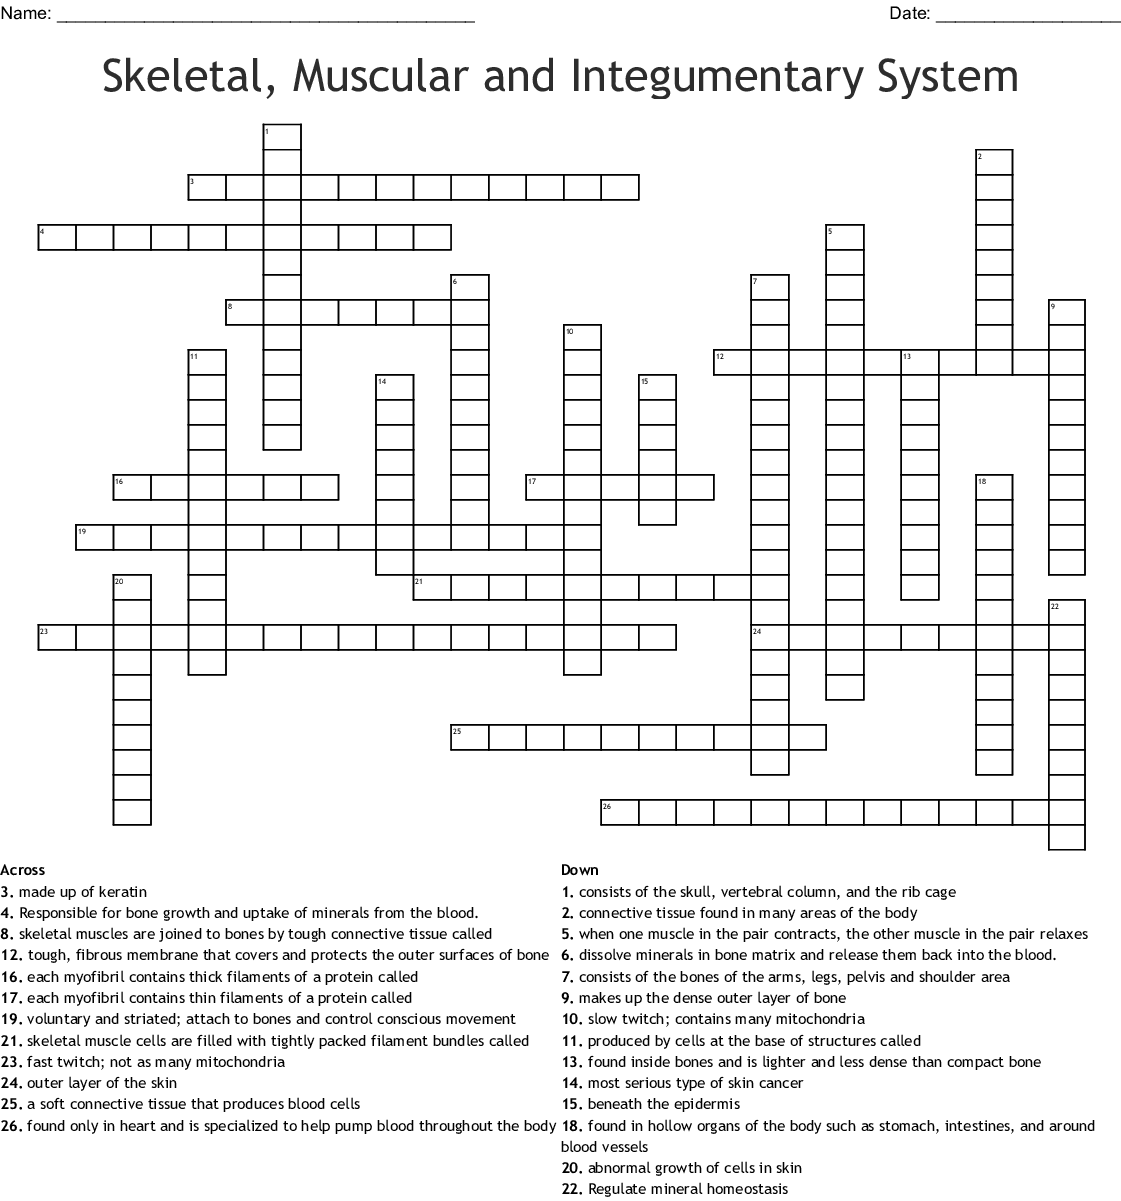 Skeletal, Muscular and Integumentary System Crossword ...